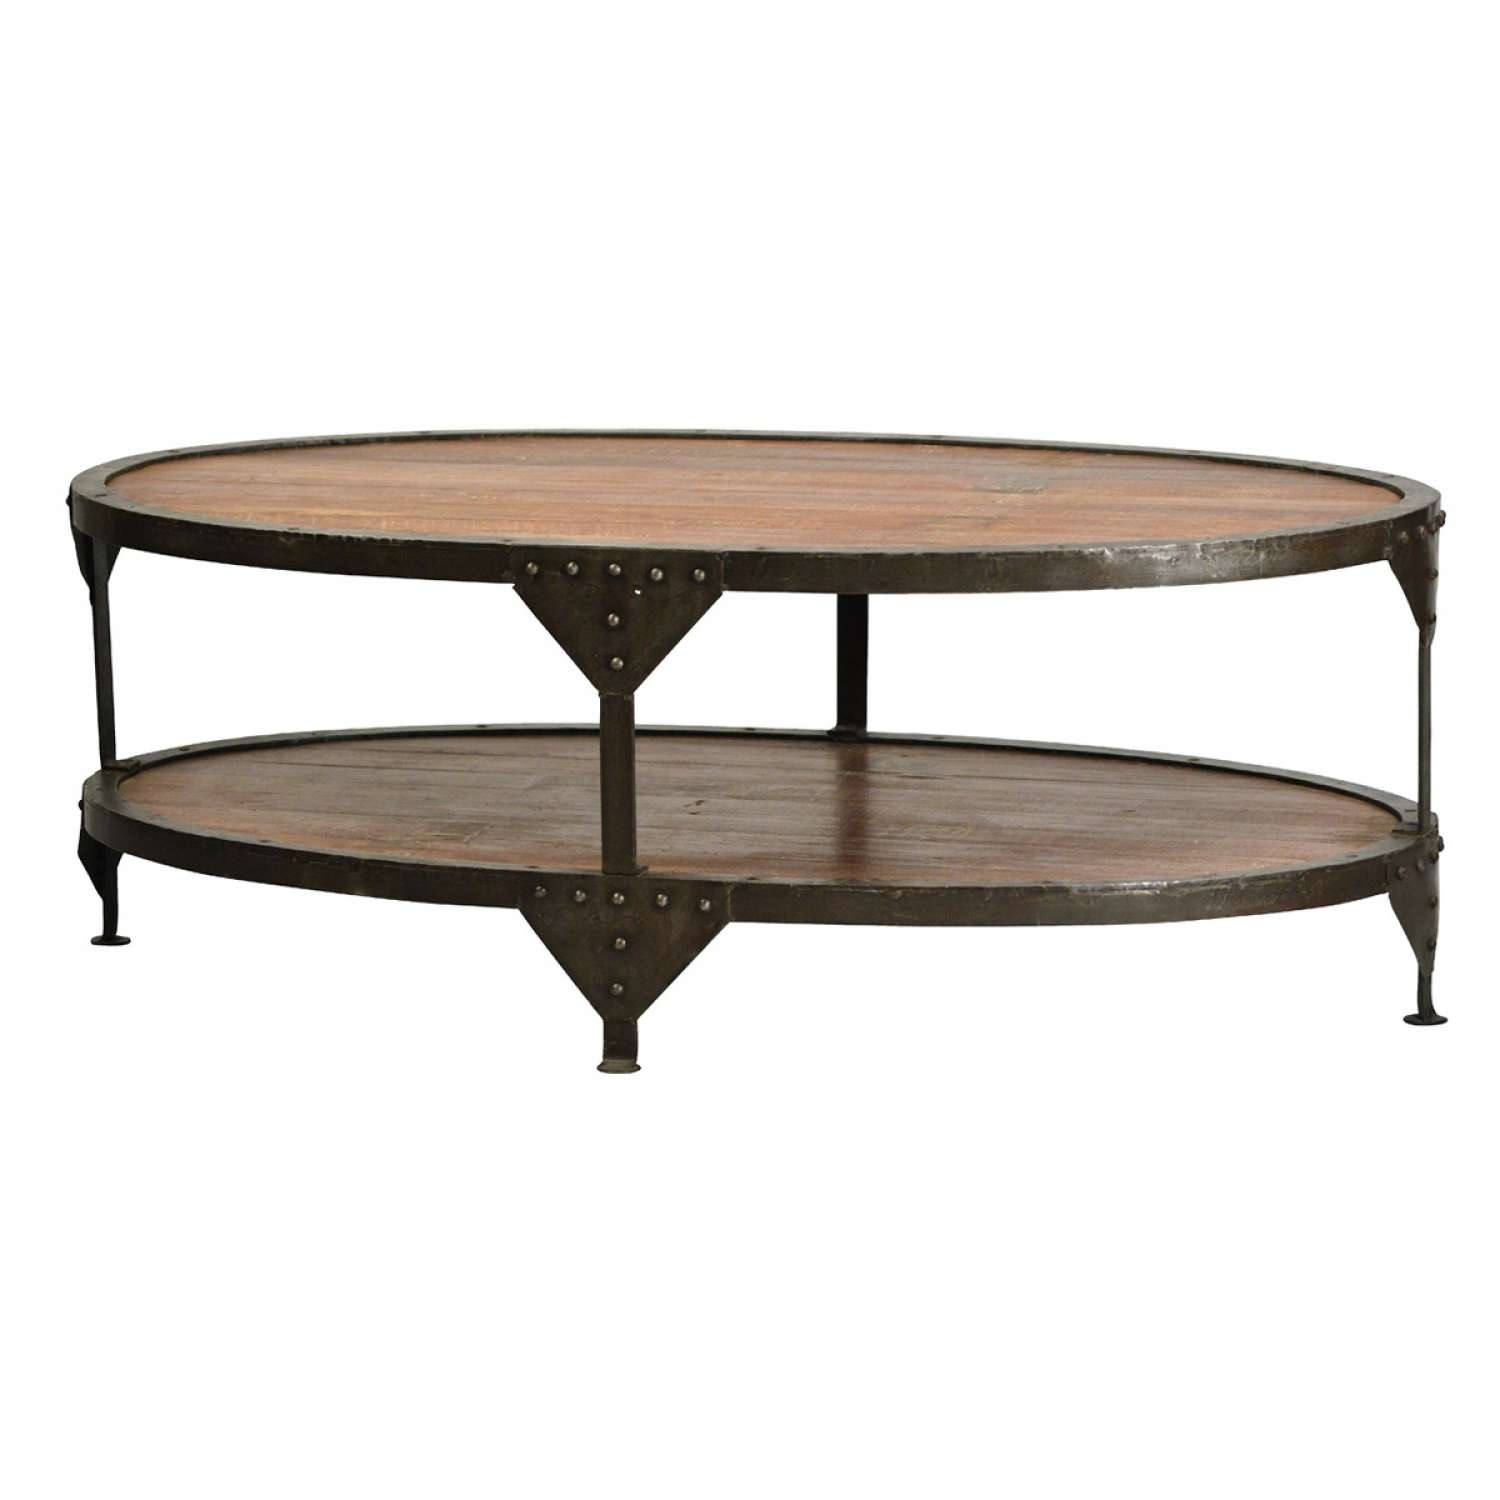 Famous Oval Wood Coffee Tables Within Coffee Tables : Oval Wood Coffee Table Fresh Round Wooden With (View 10 of 20)